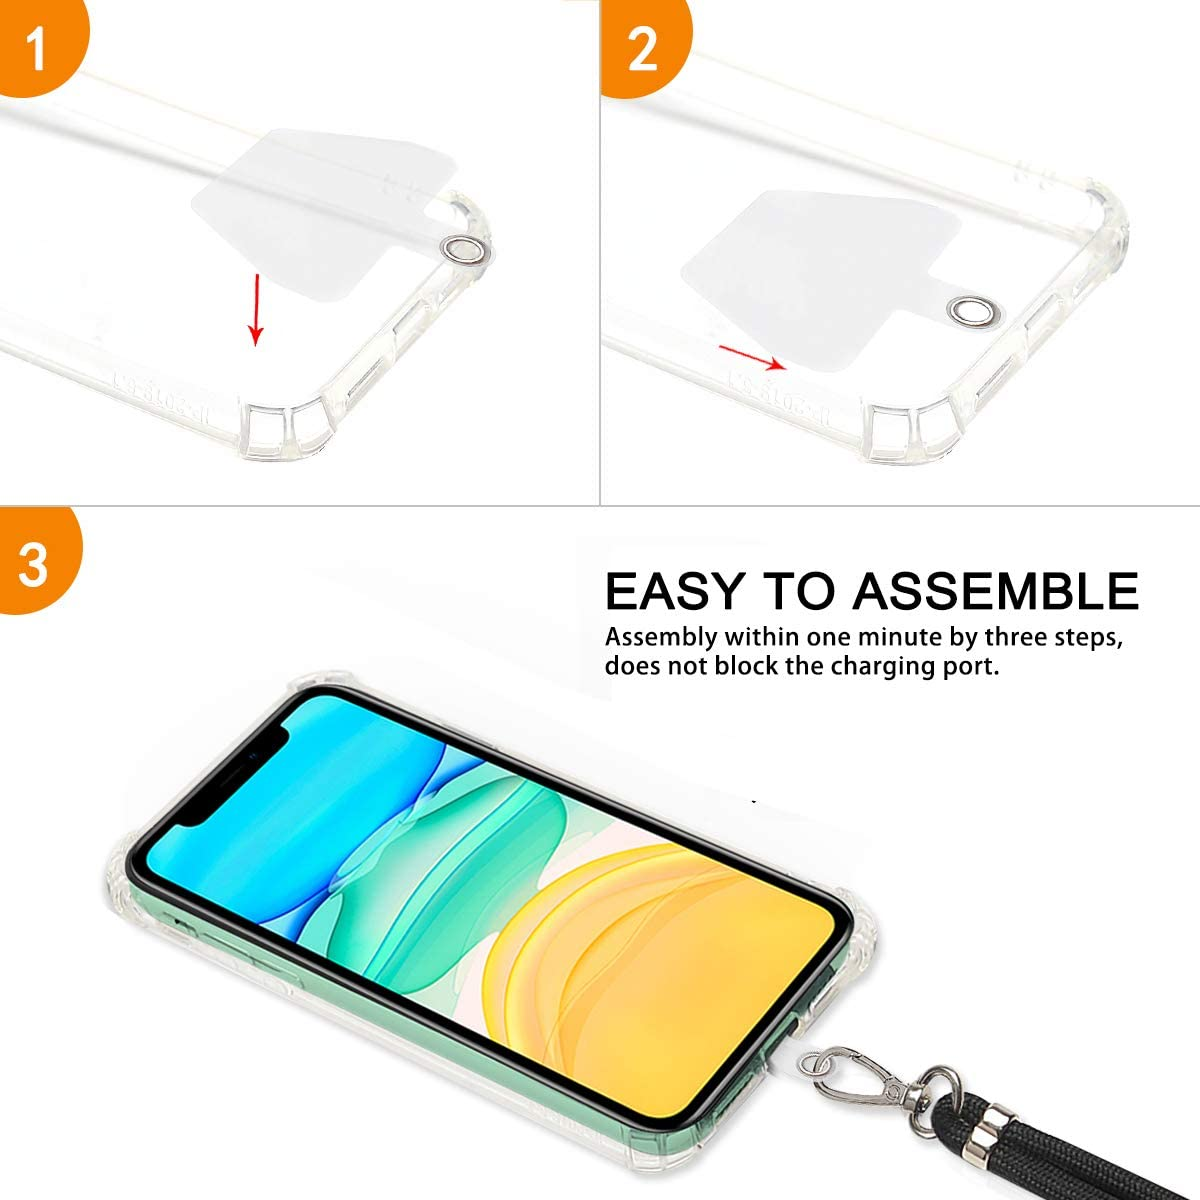 Universal Crossbody Cell Phone Lanyard with 2 Pack Phone Safety Tether Connector takyu Phone Lanyard